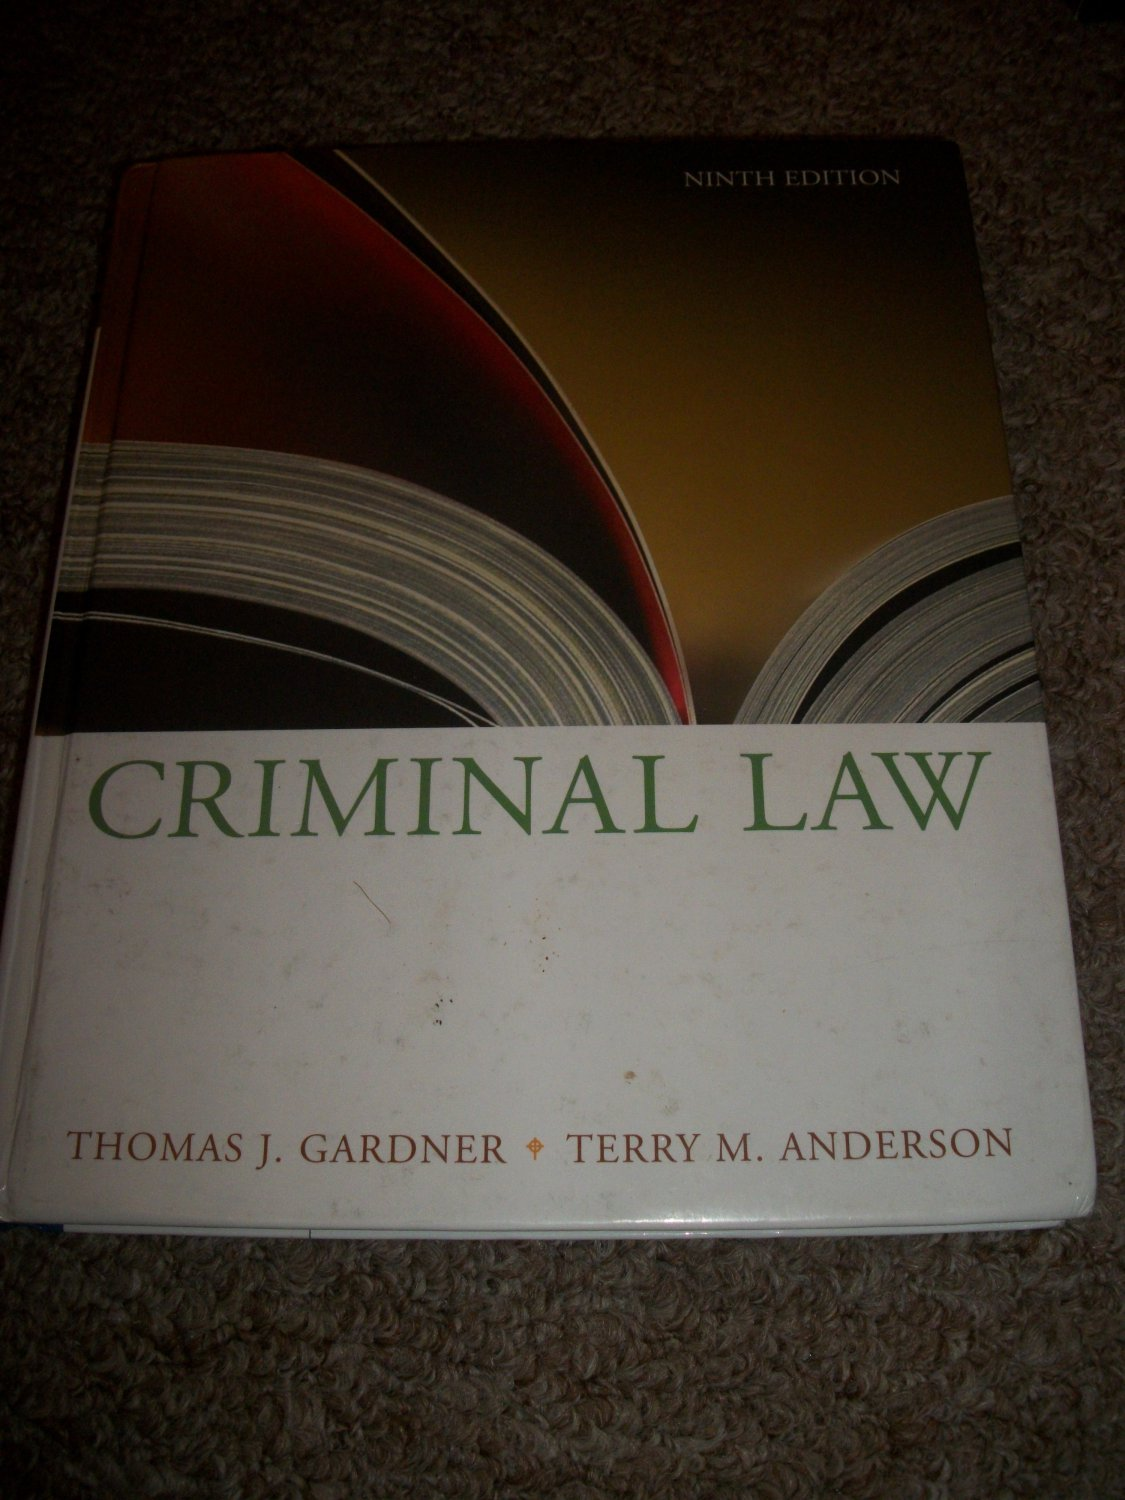 Criminal Law Ninth Edition- Thomas Gardner+ Terry Anderson